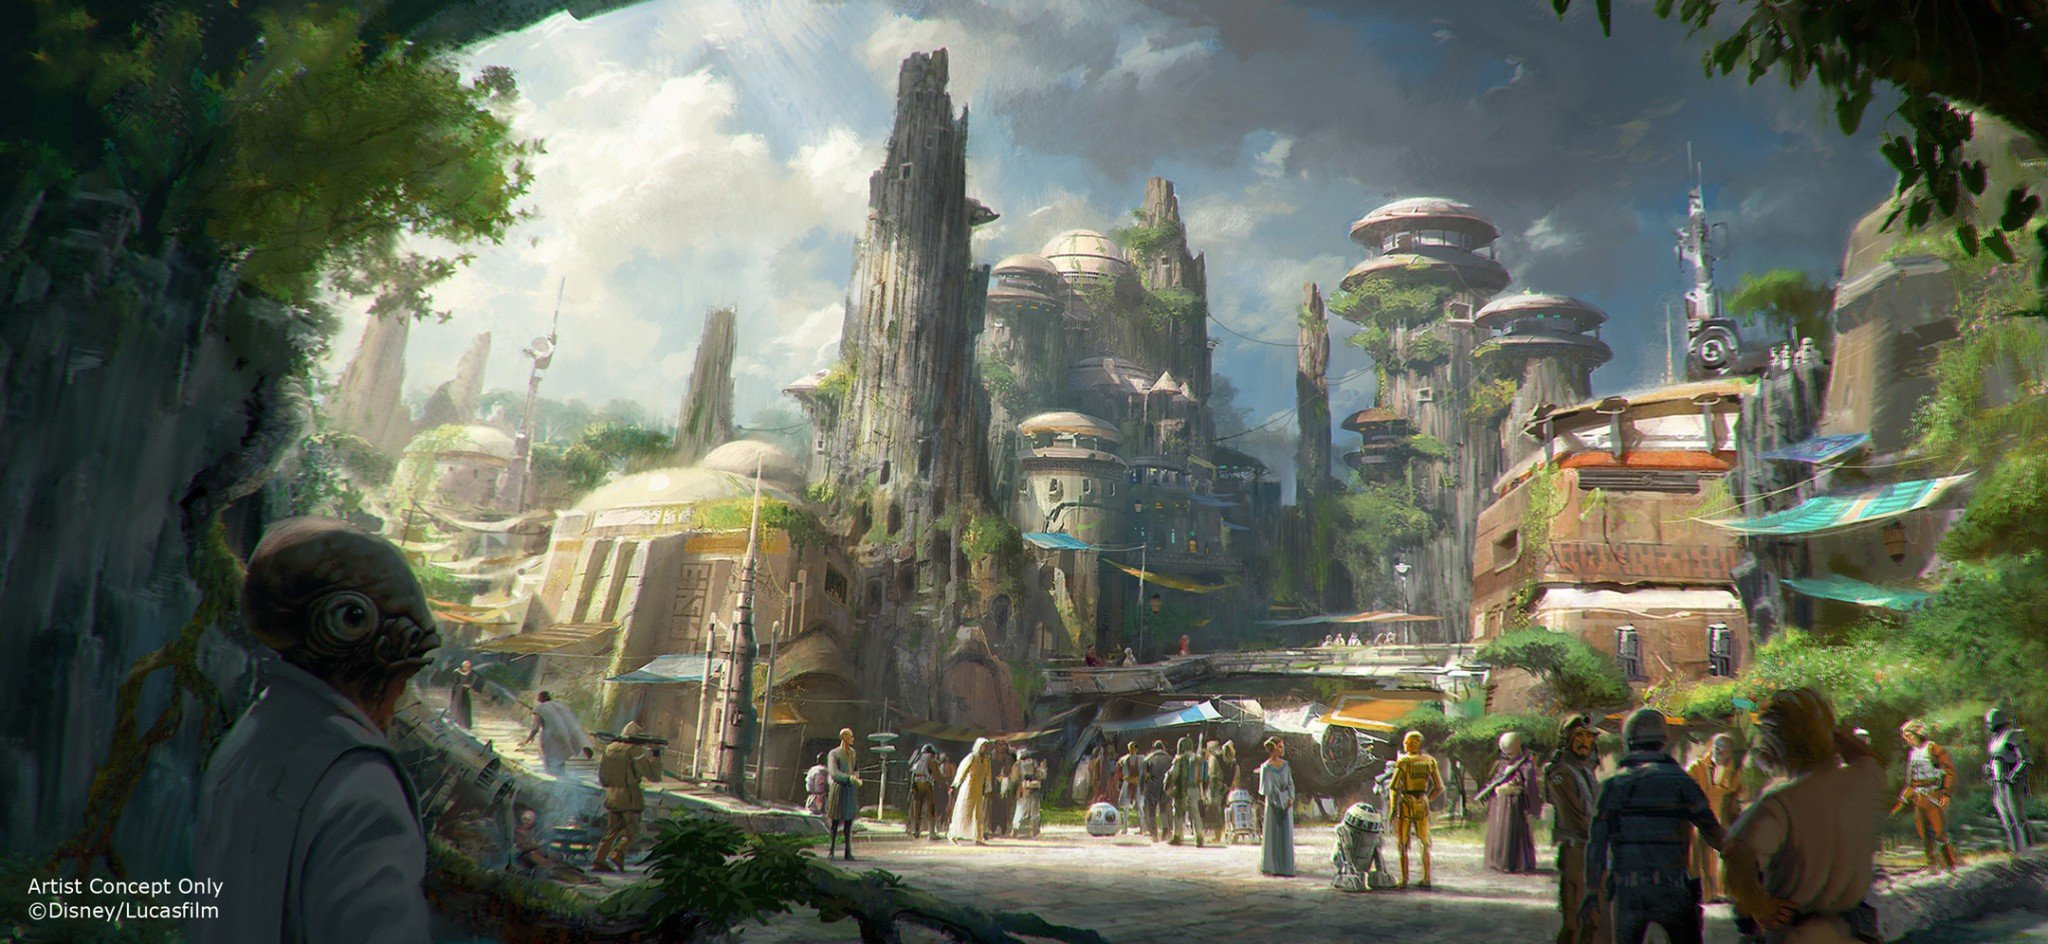 Star Wars Land Concept Art 3